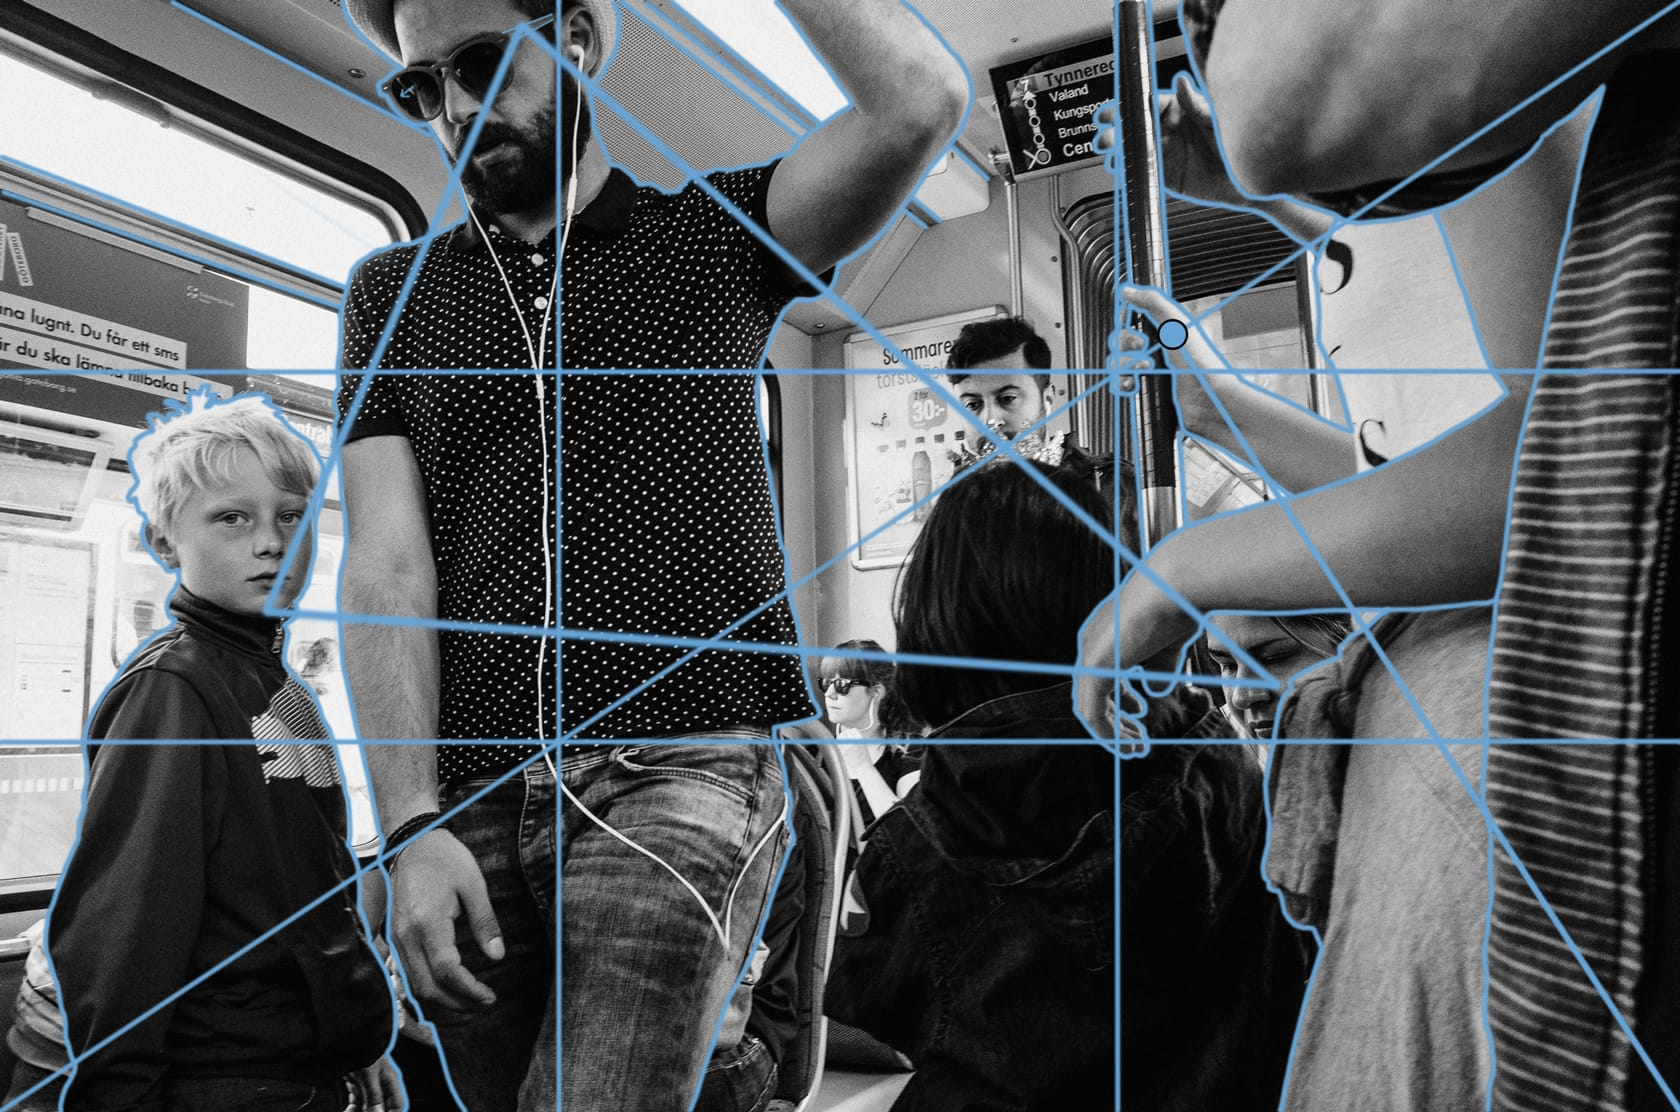 'On The Tram' by Linus Andersson, annotated